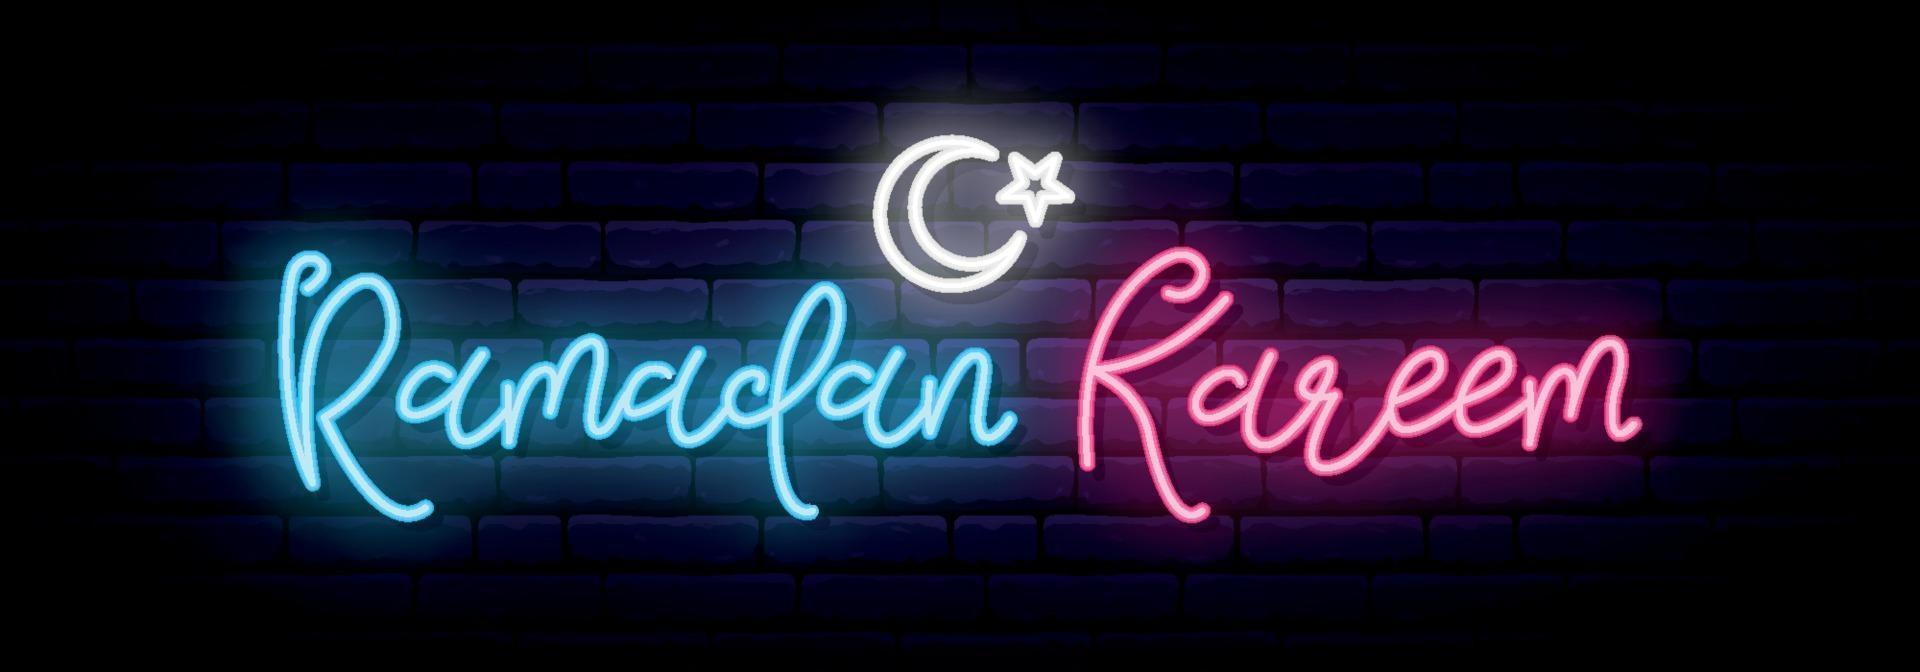 Ramadan Kareem neon sign banner. White crescent, star sign and neon lettering. vector